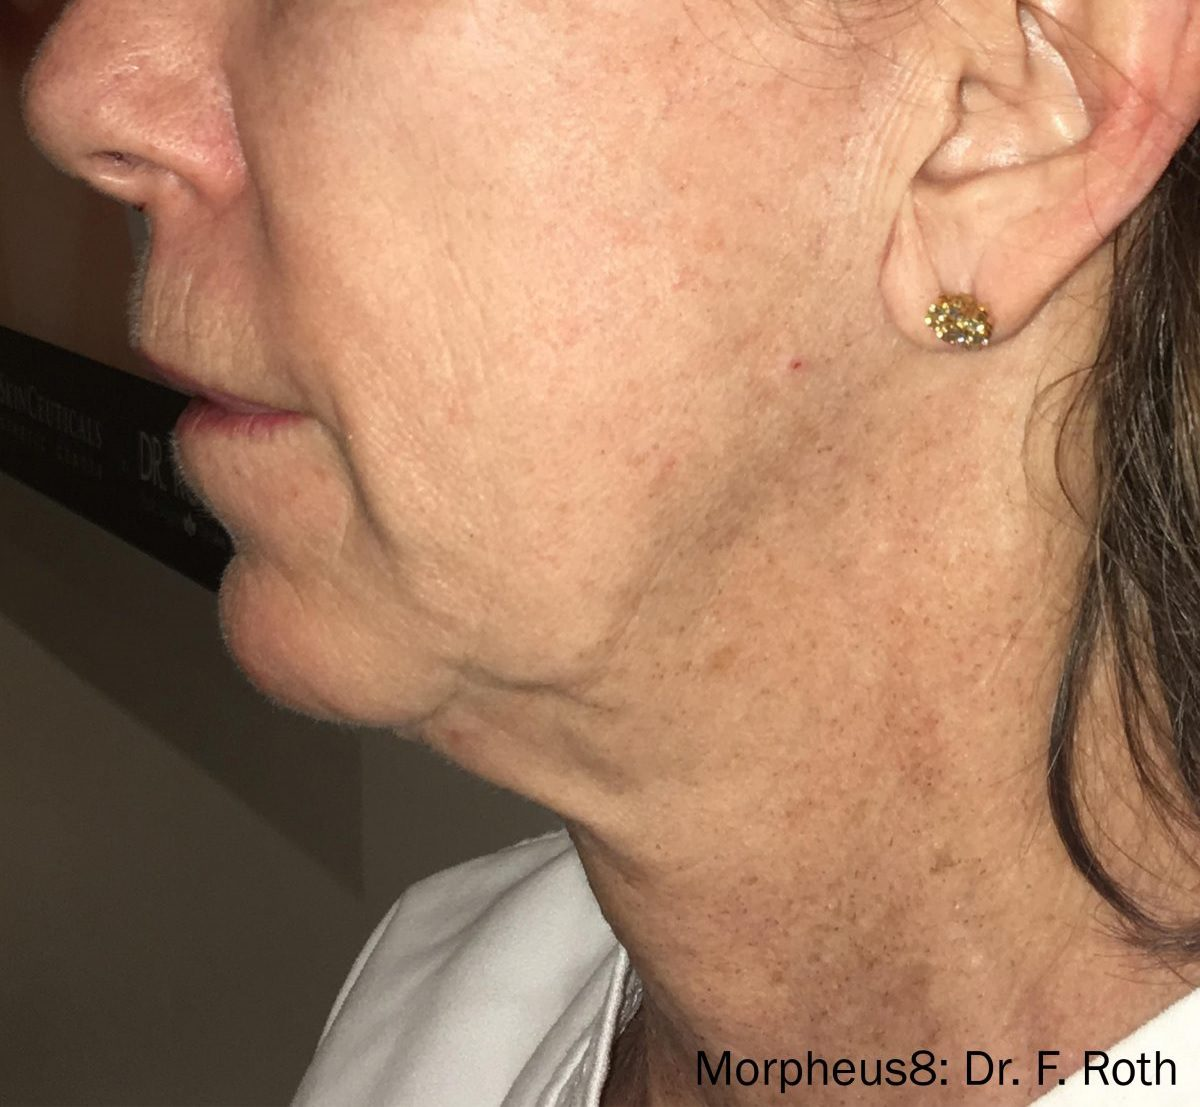 Morpheus8 face and neck wrinkles after